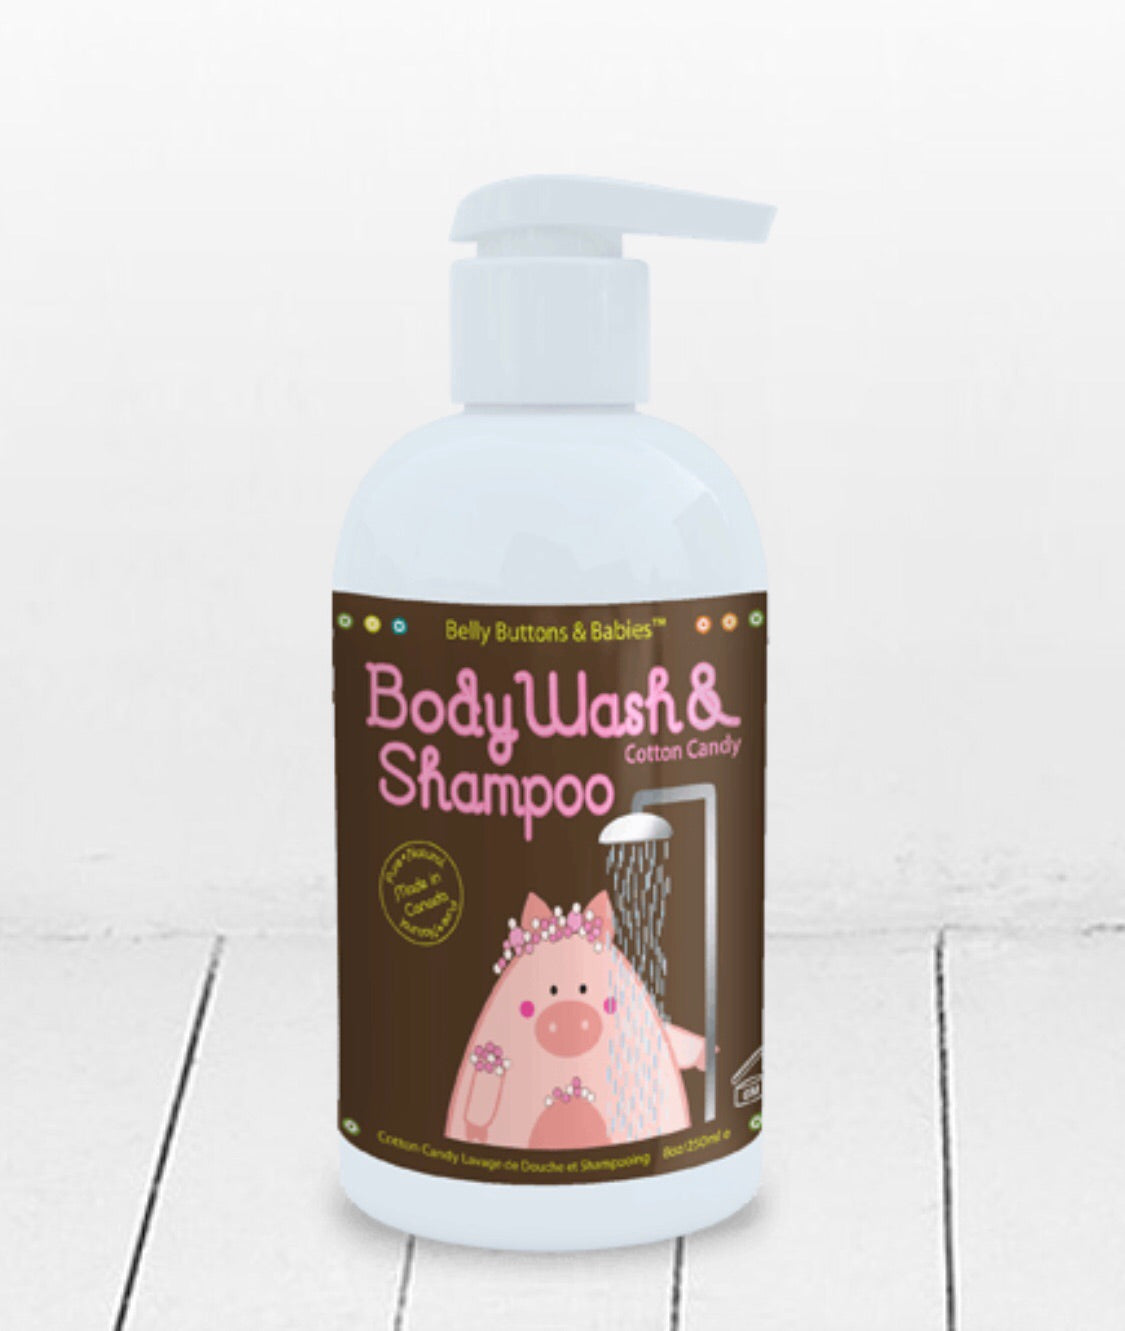 Belly Button & Babies - Mom & Baby Body Wash and Shampoo Cotton Candy - Le Bébé Chic Boutique